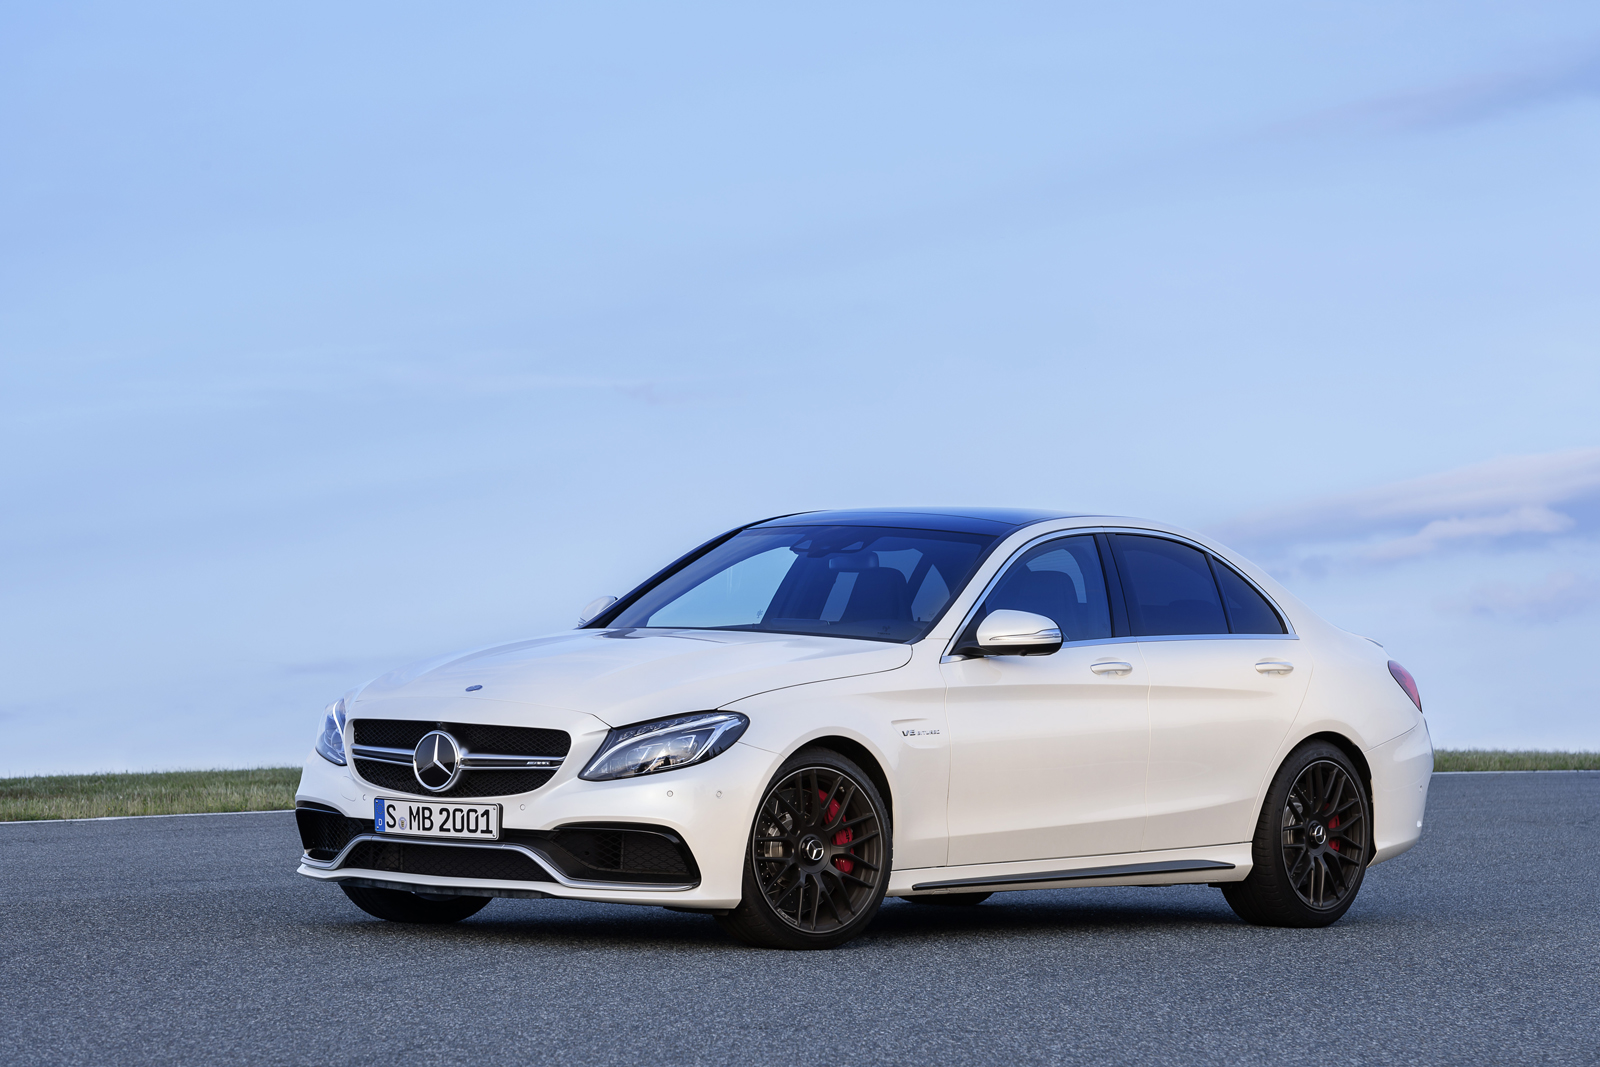 mercedes-amg-c63-saloon-paris-2014-mercedesblog-201